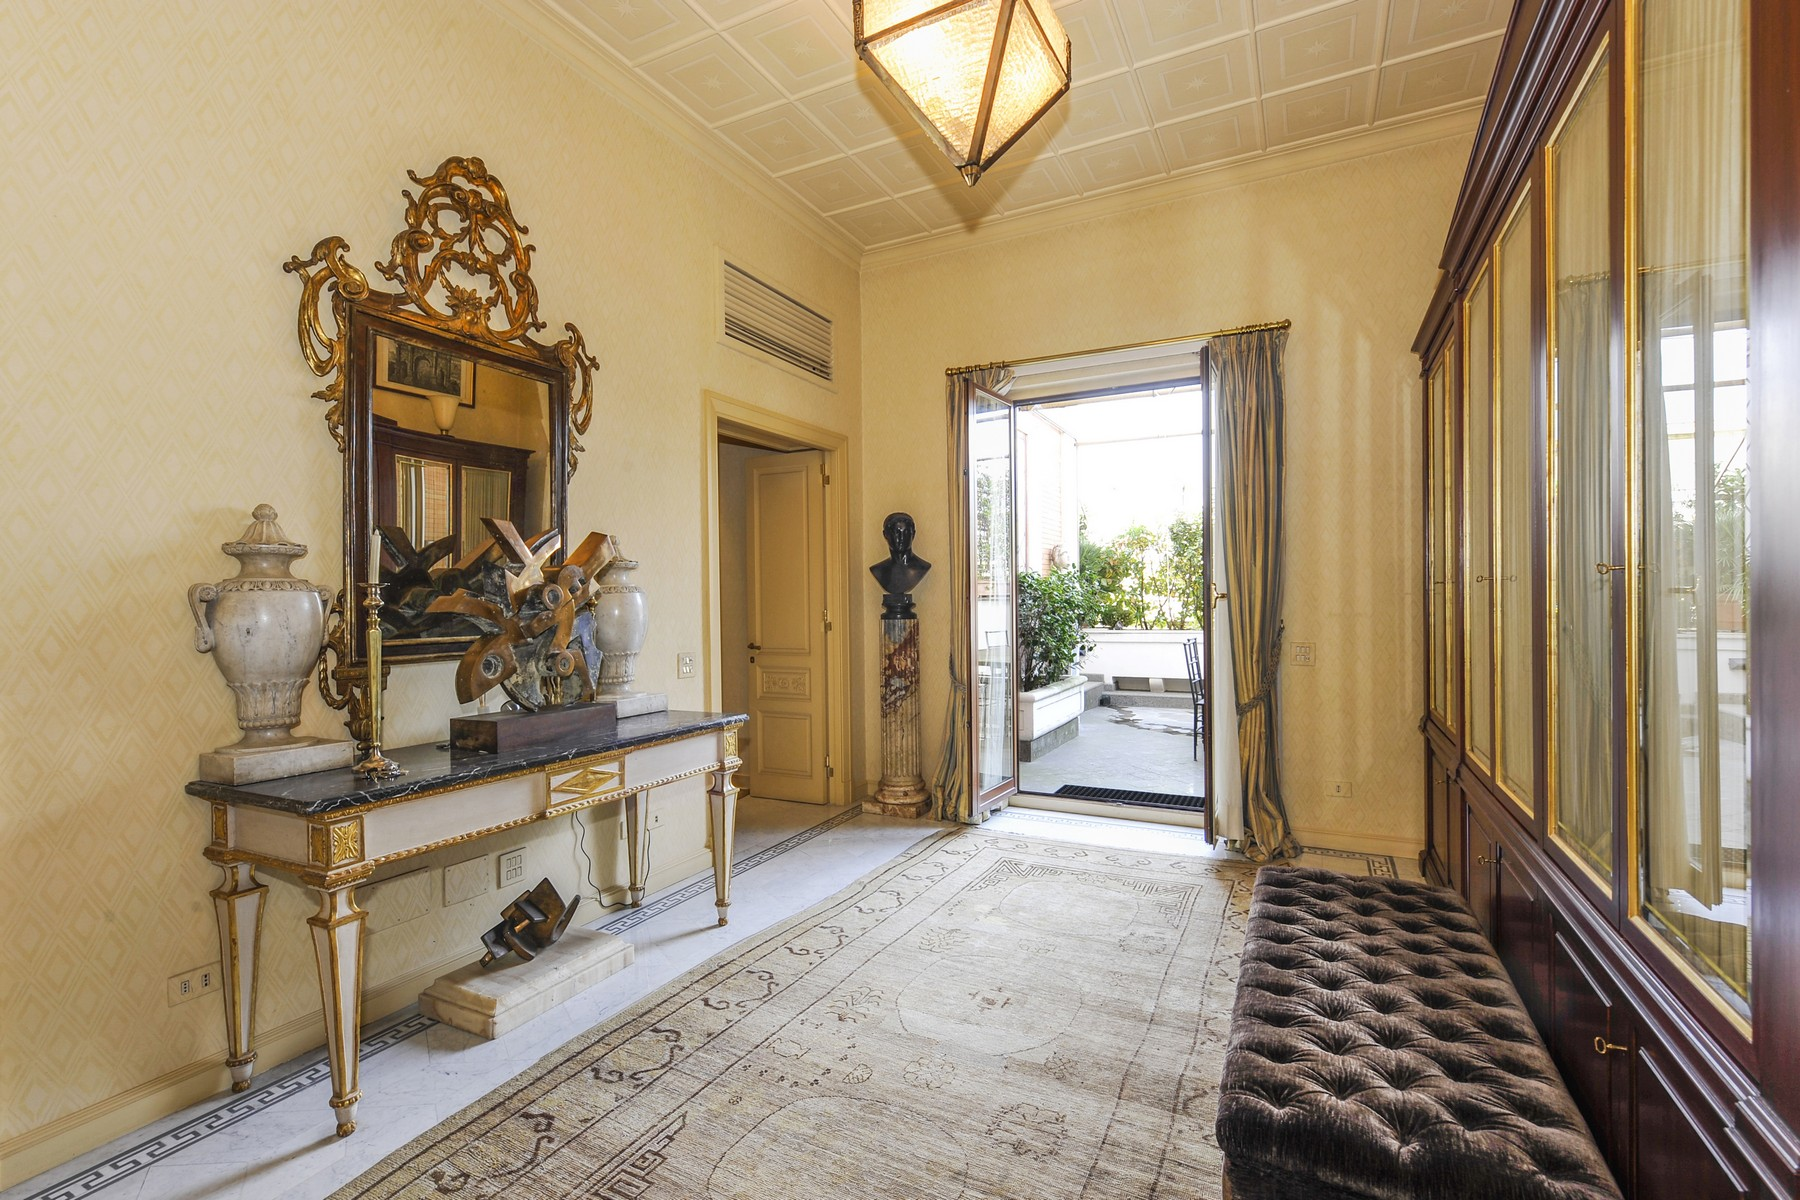 Квартира для того Продажа на Stunning penthouse in the historical center Via Barberini Rome, Рим, 00187 Италия